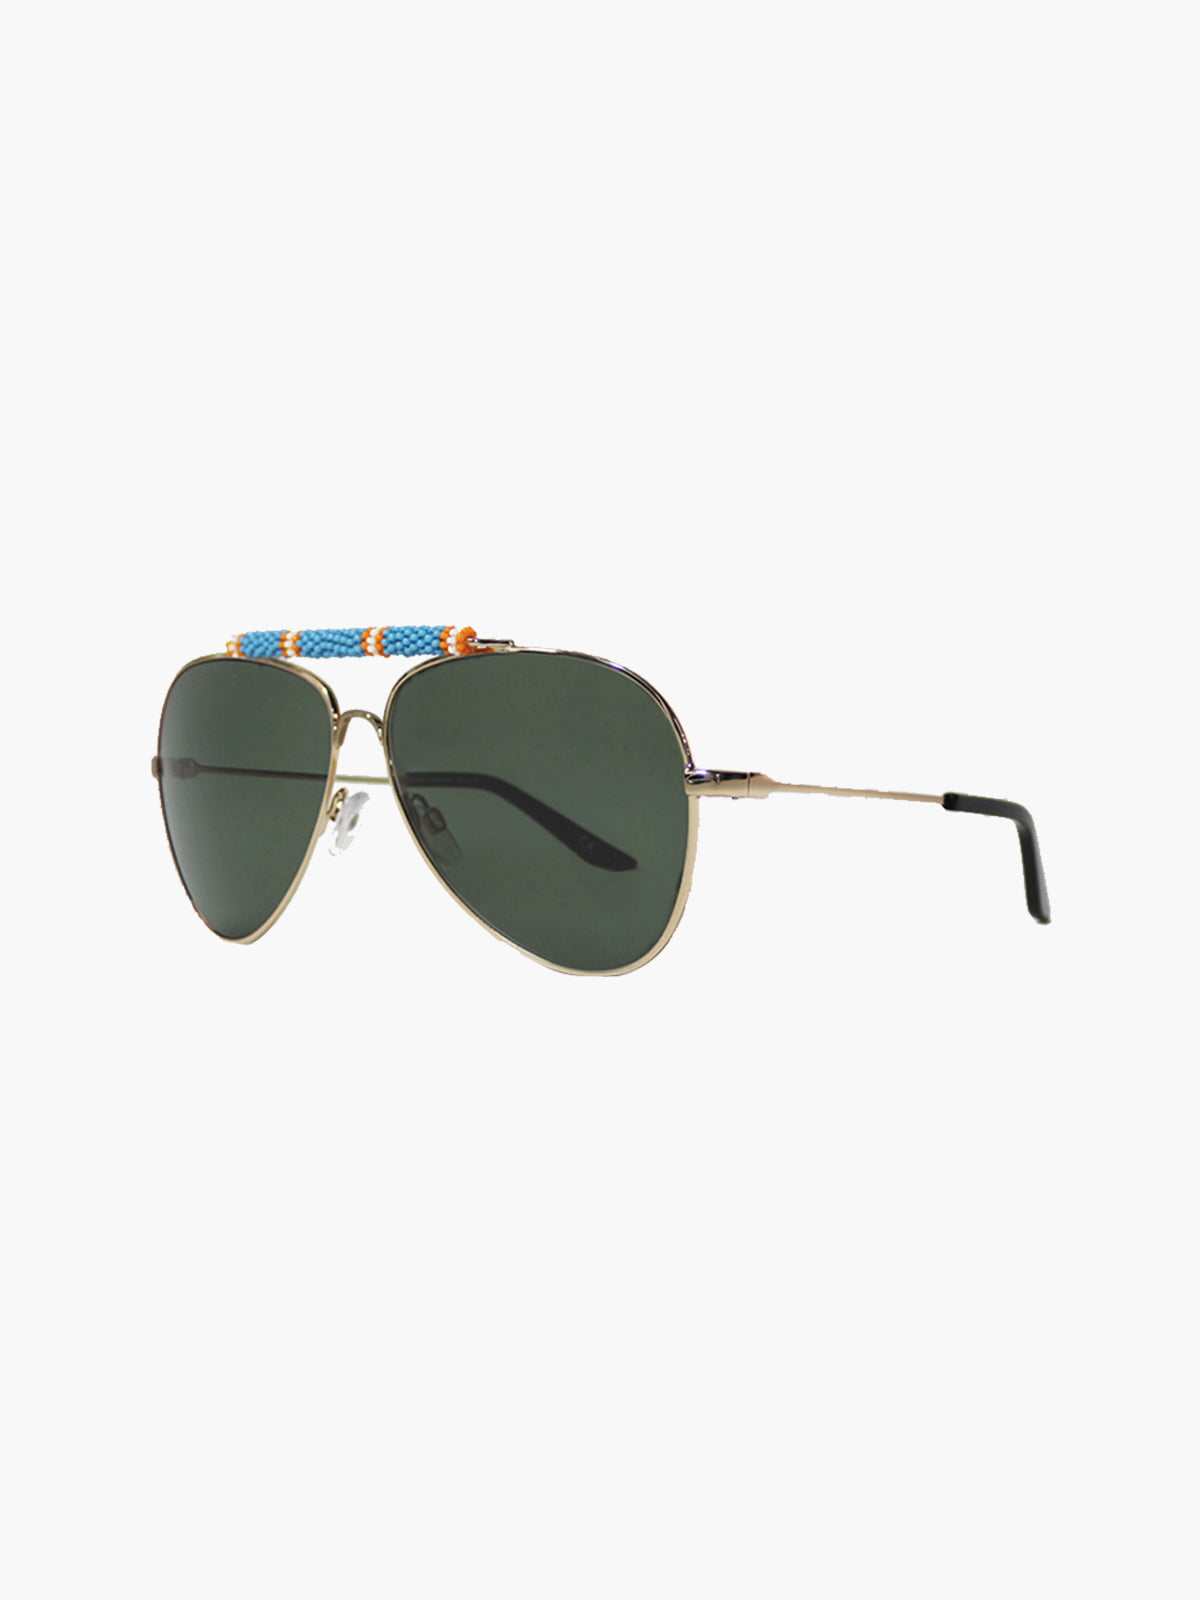 Exclusive Sunglasses | Turquoise/Orange Exclusive Sunglasses | Turquoise/Orange